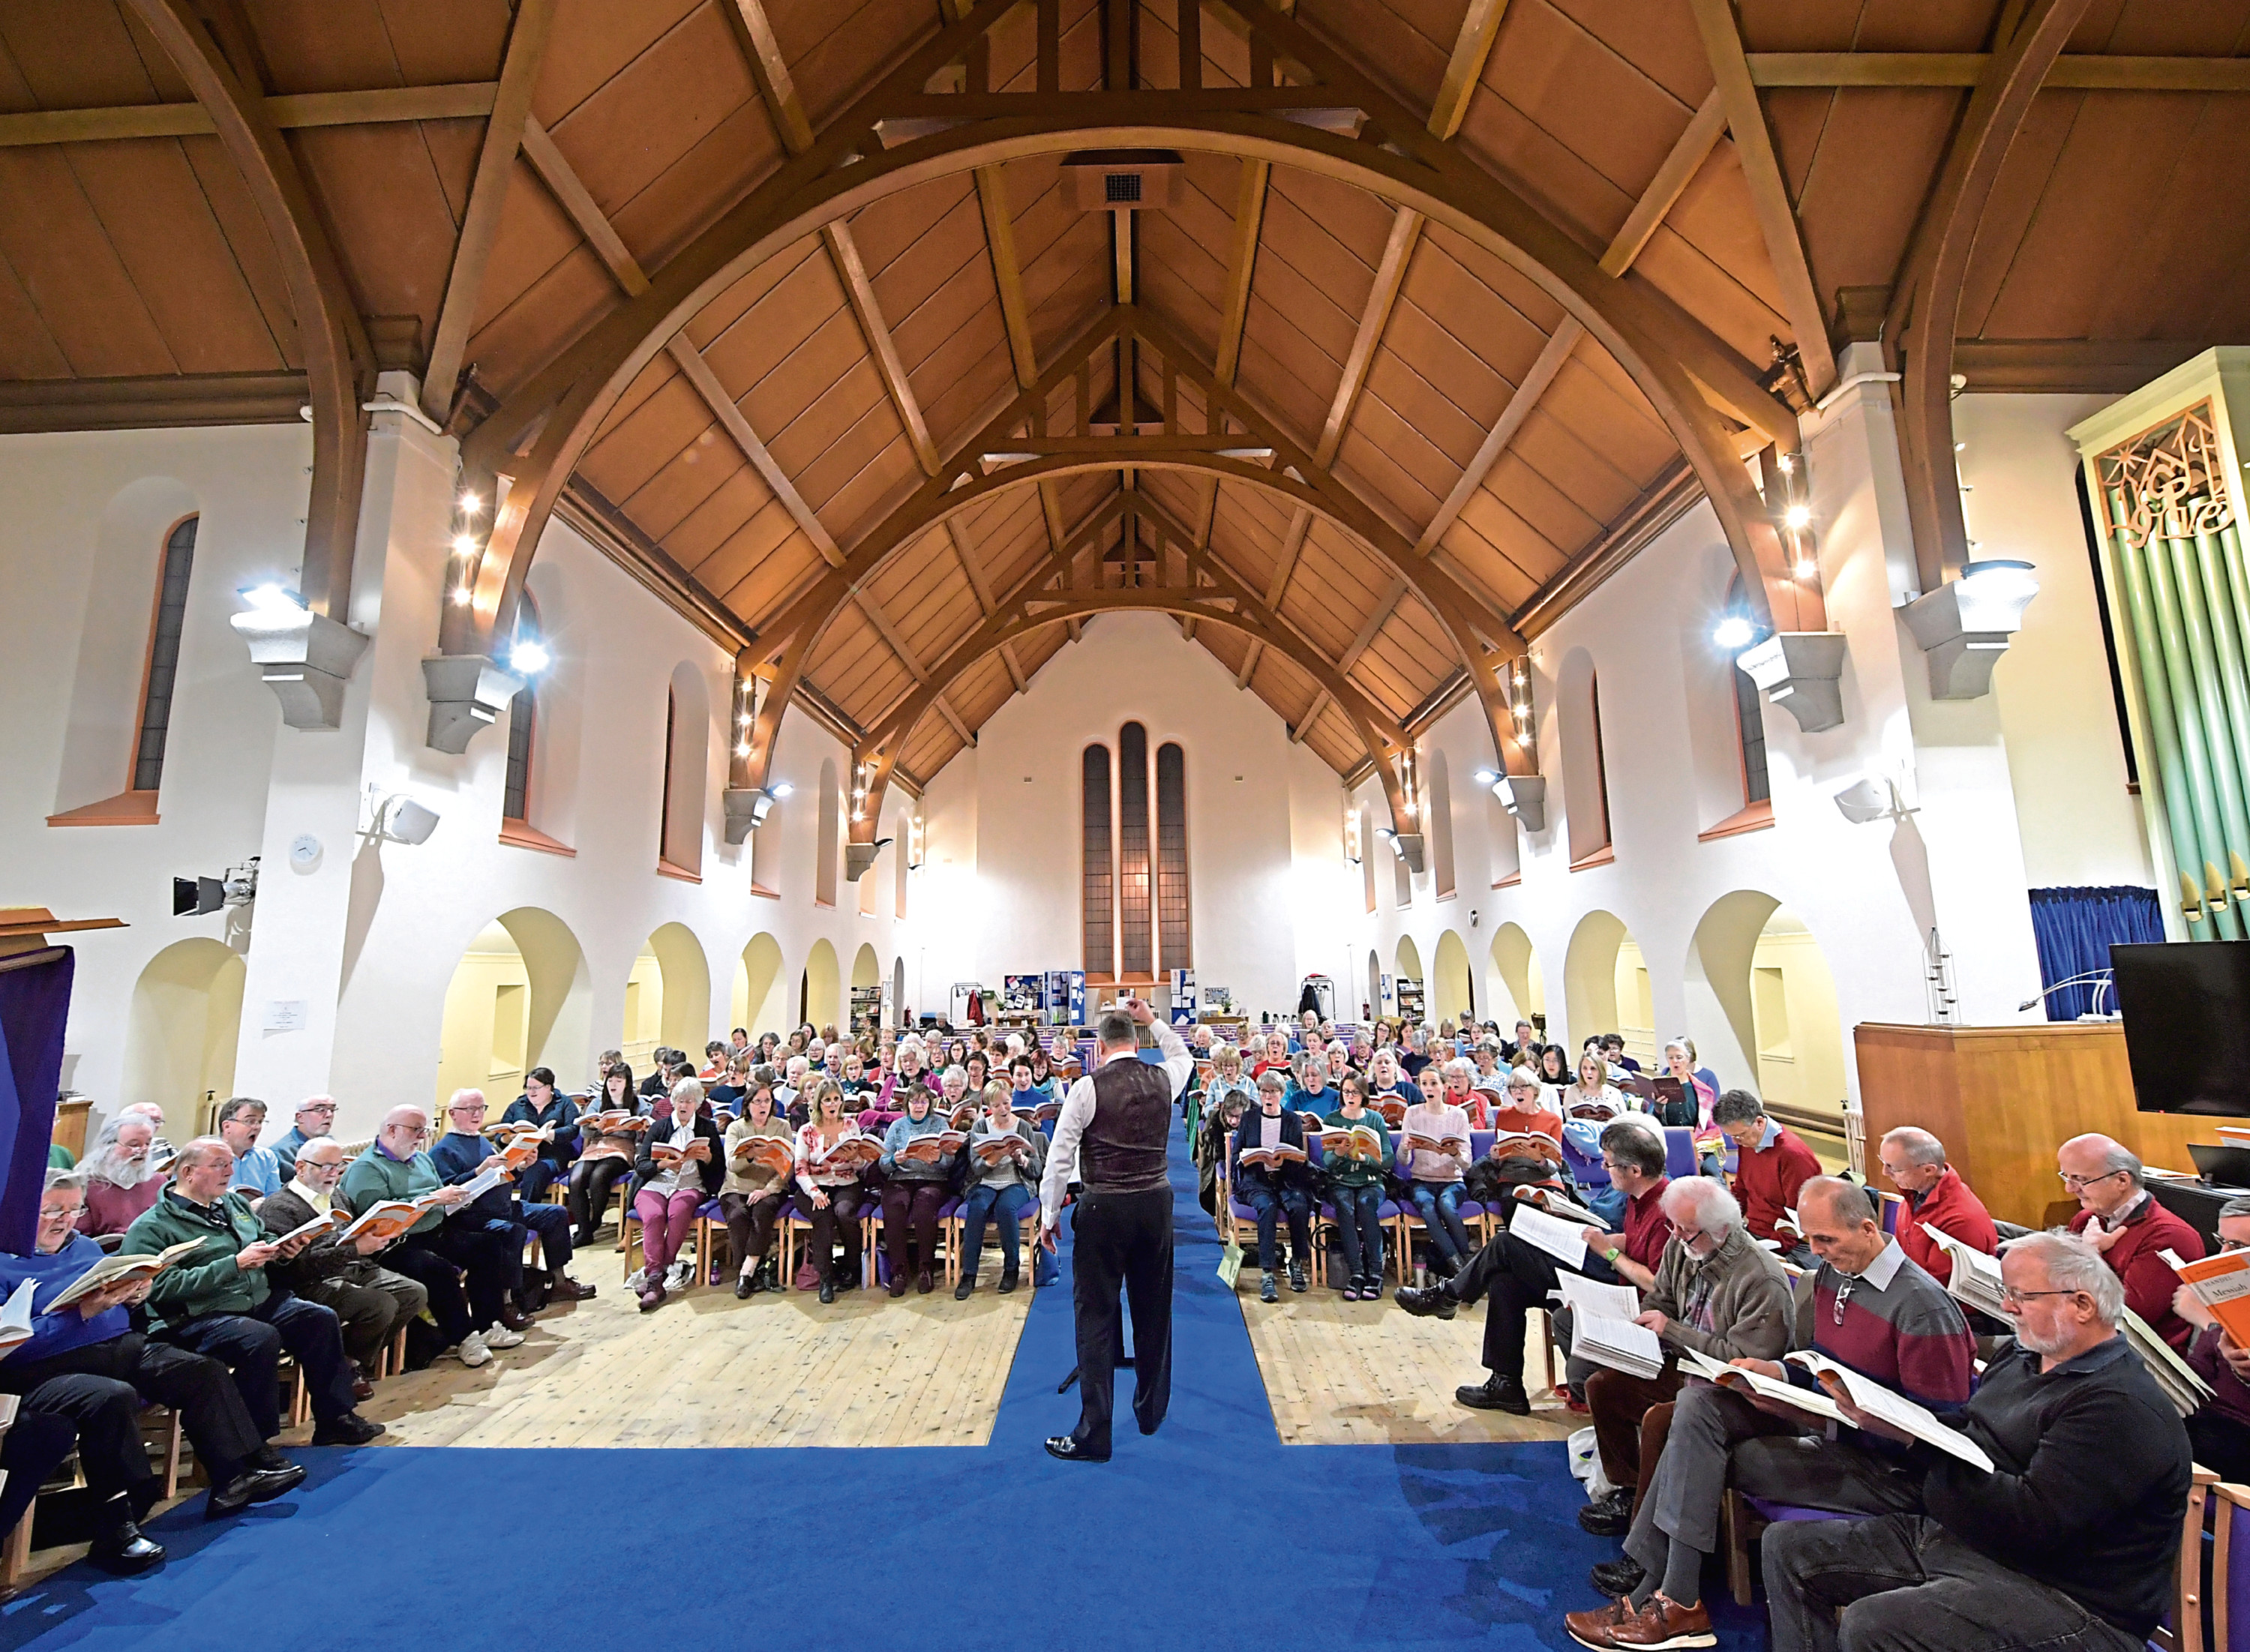 The Aberdeen and Bach choirs are performing together for the first time